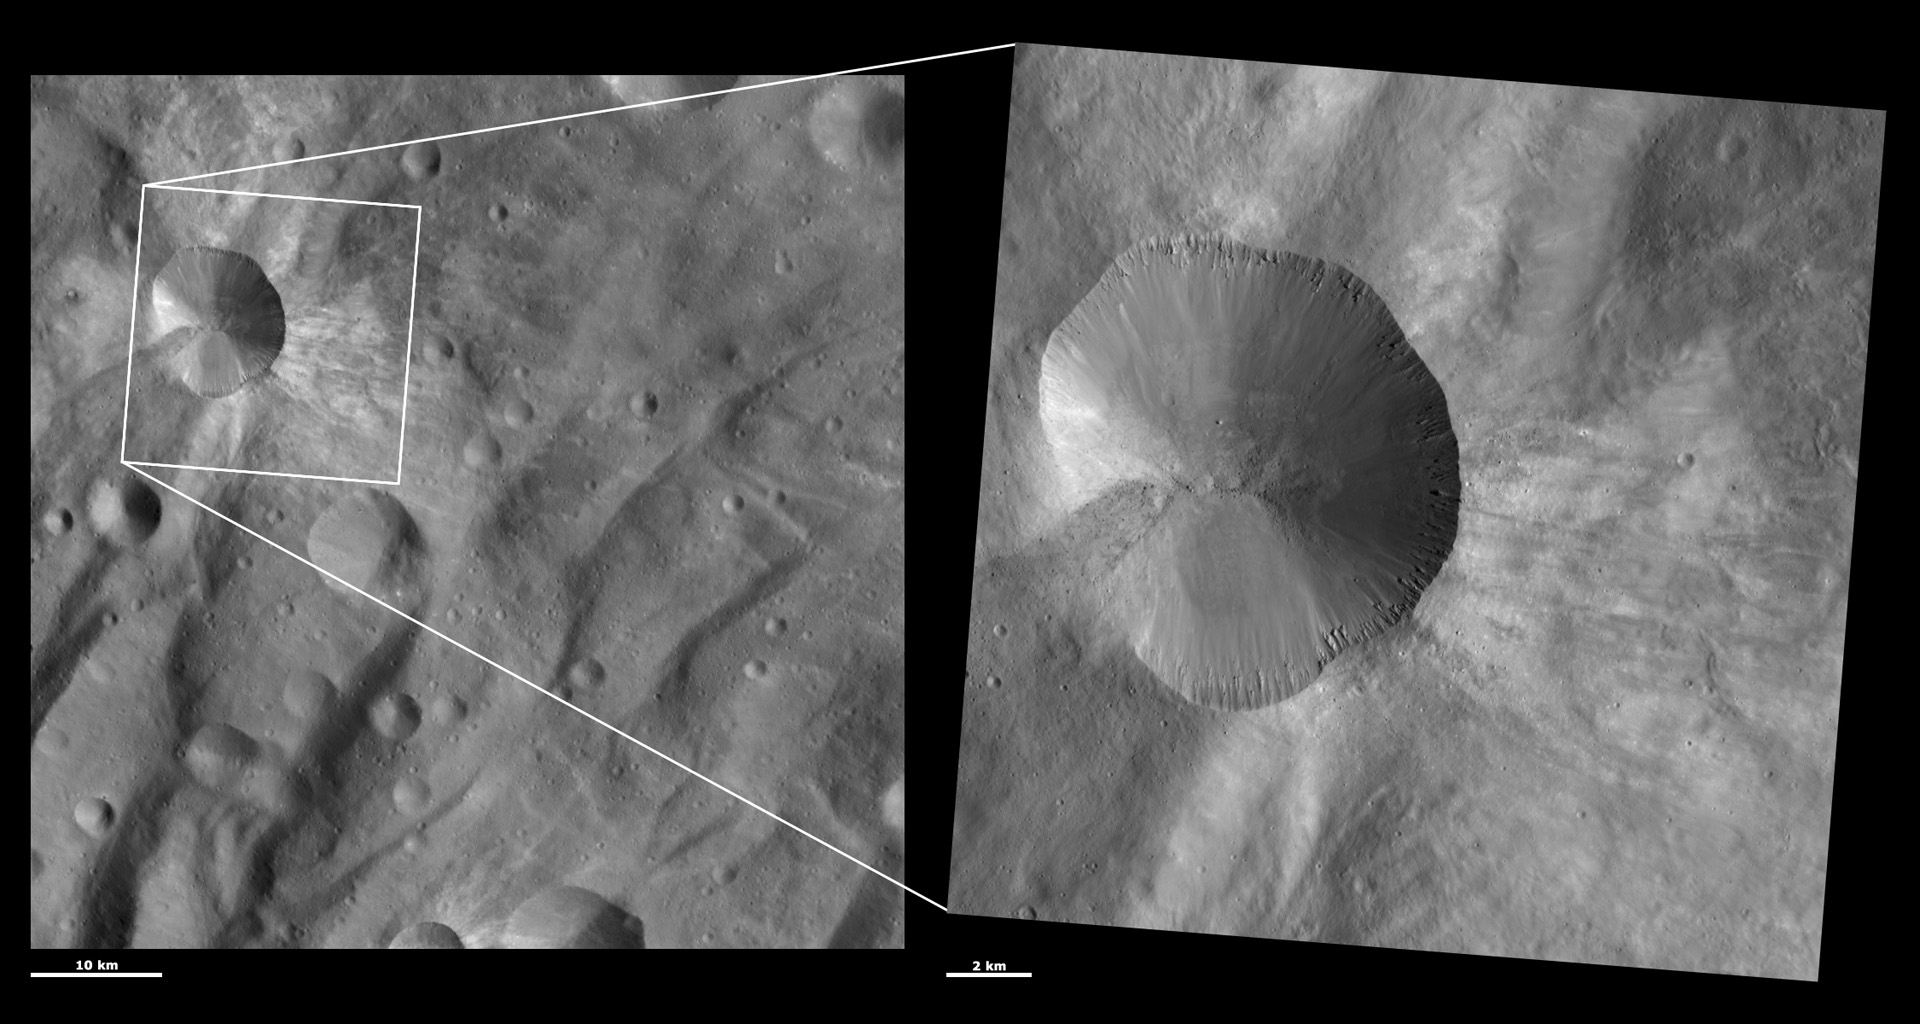 HAMO and LAMO Images of Canuleia Crater